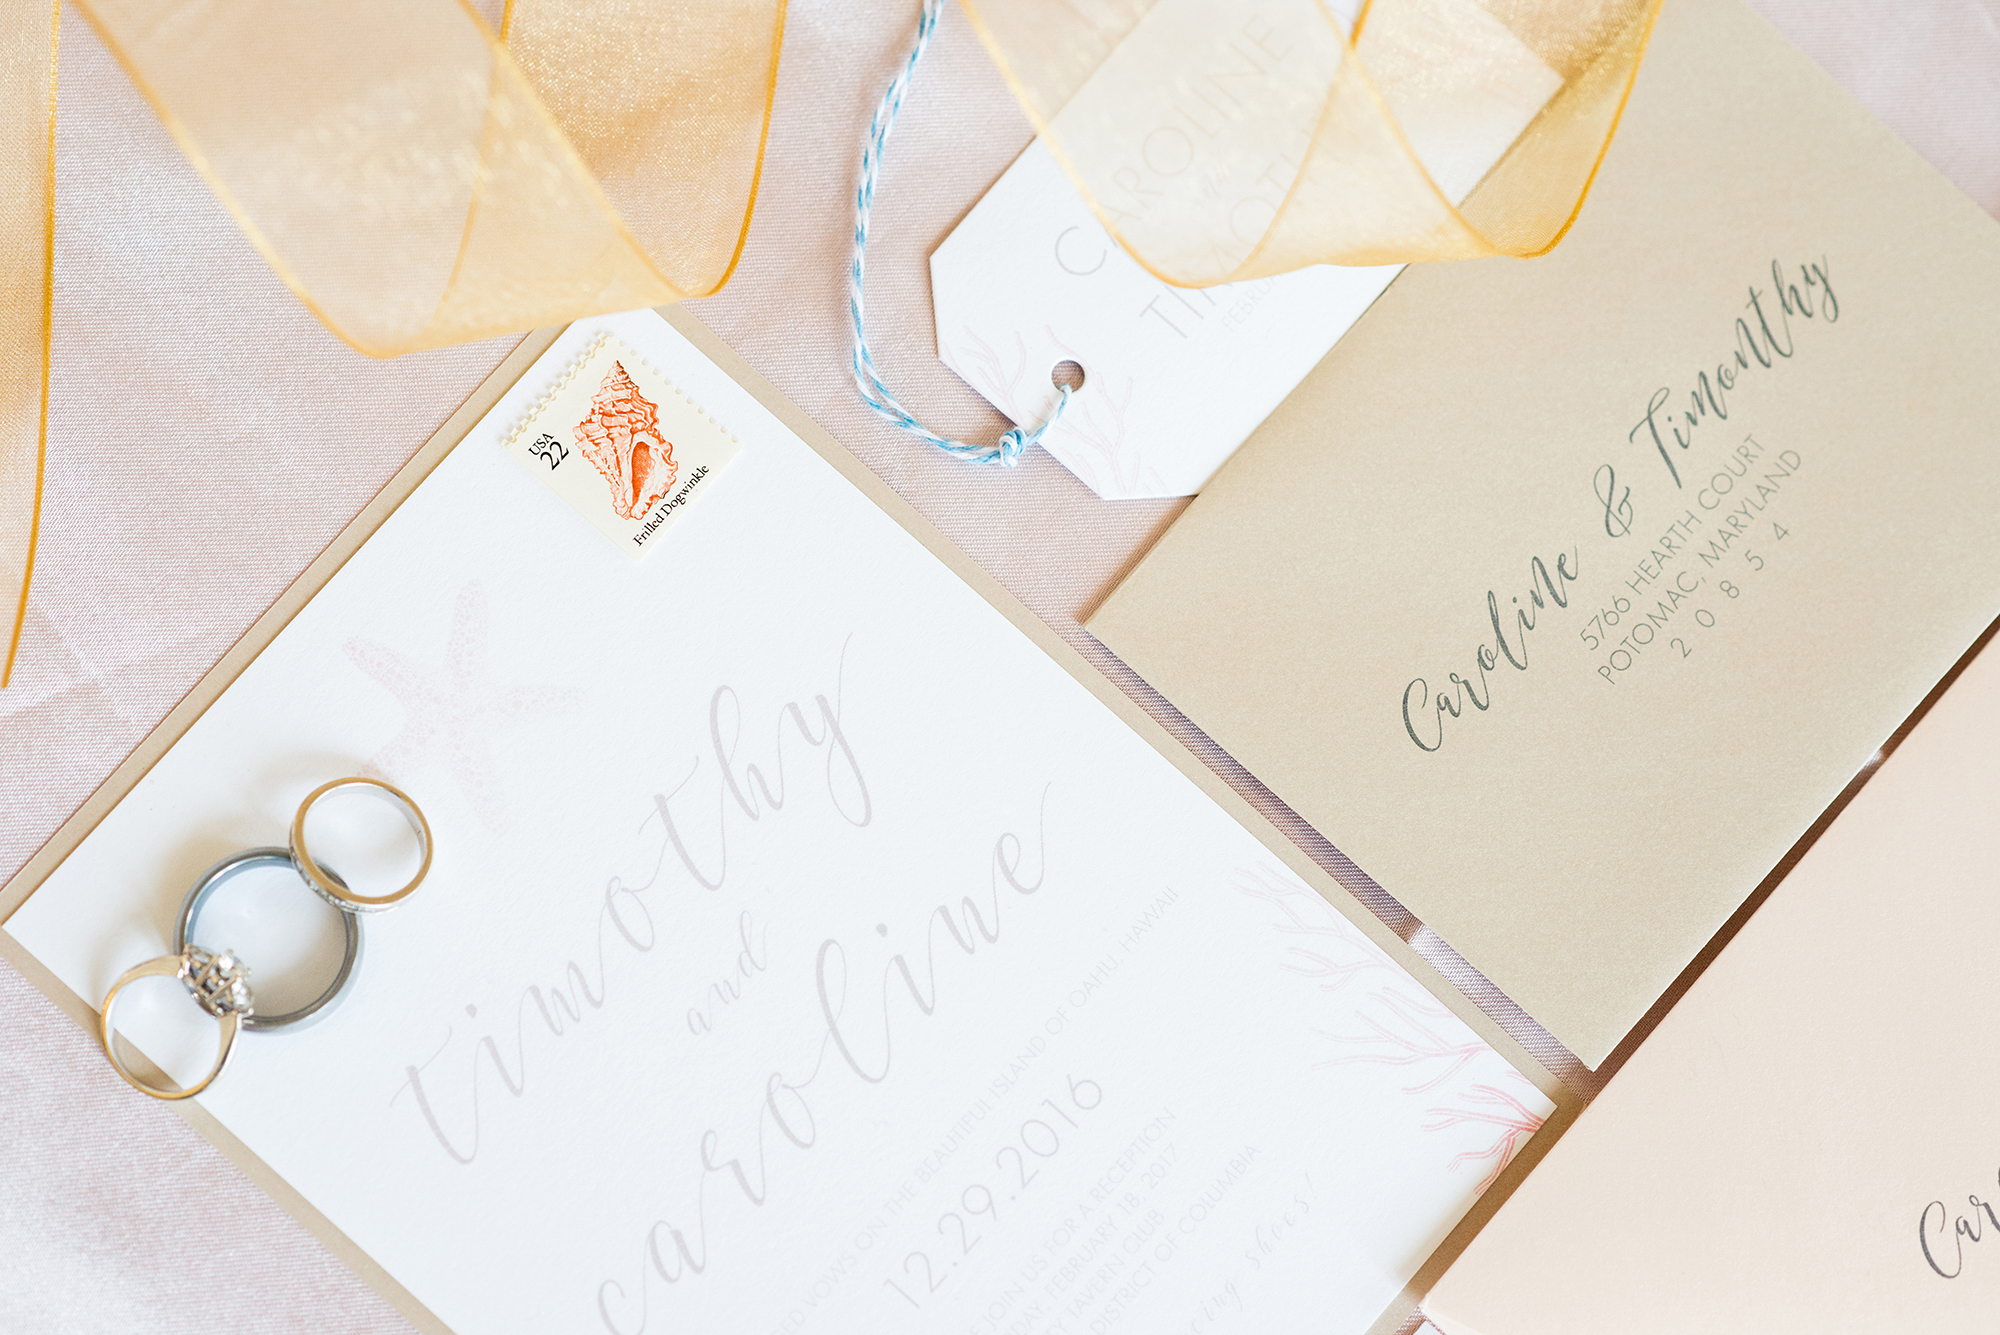 White and cream beach themed wedding invitation - from a Romantic Elopement in Hawaii on the island of Oahu - photo by Marianne Blackham Photography - see more on www.BrendasWeddingBlog.com